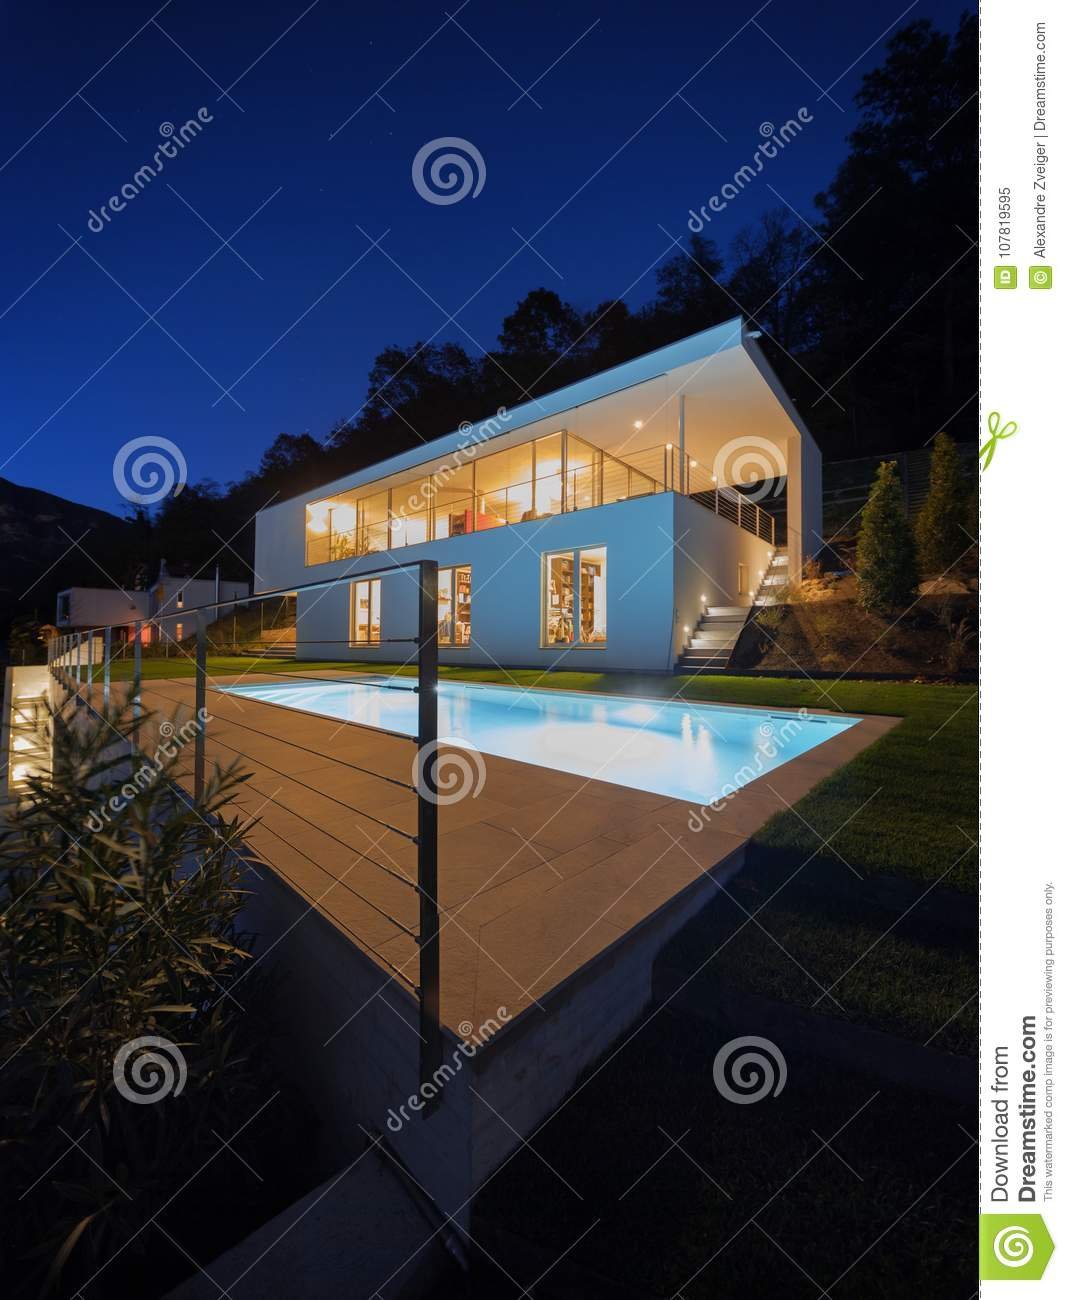 Modern house exterior in the night lights on